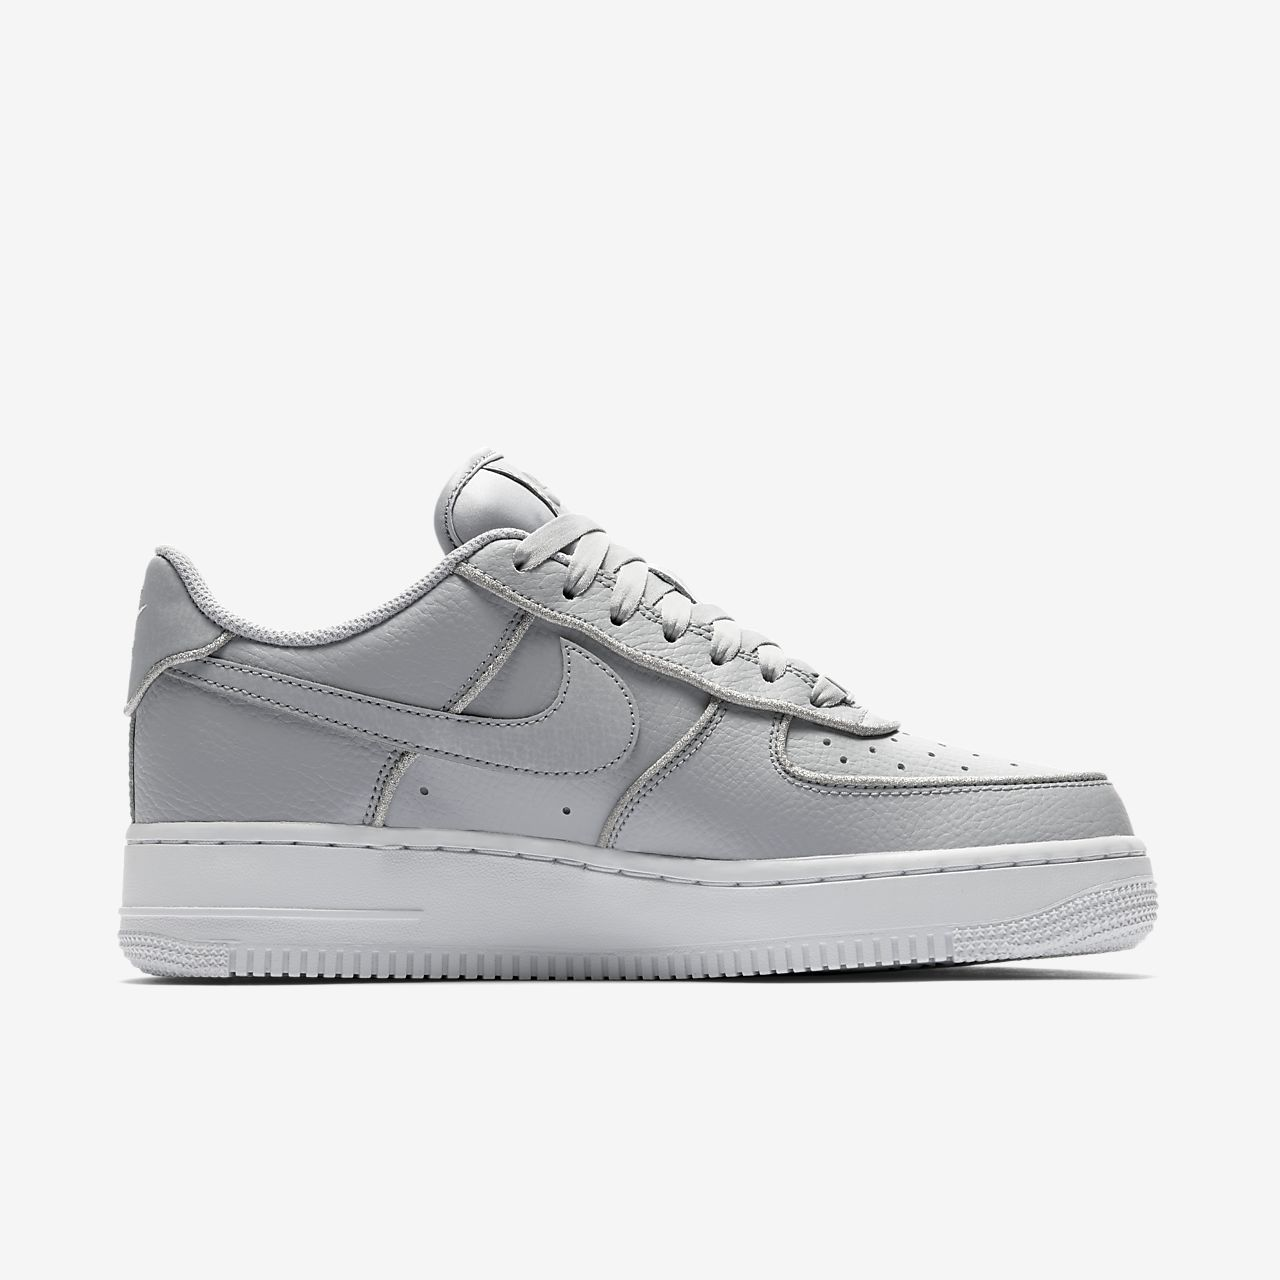 best website e171a 87689 ... Nike Air Force 1 Low Glitter Womens Shoe